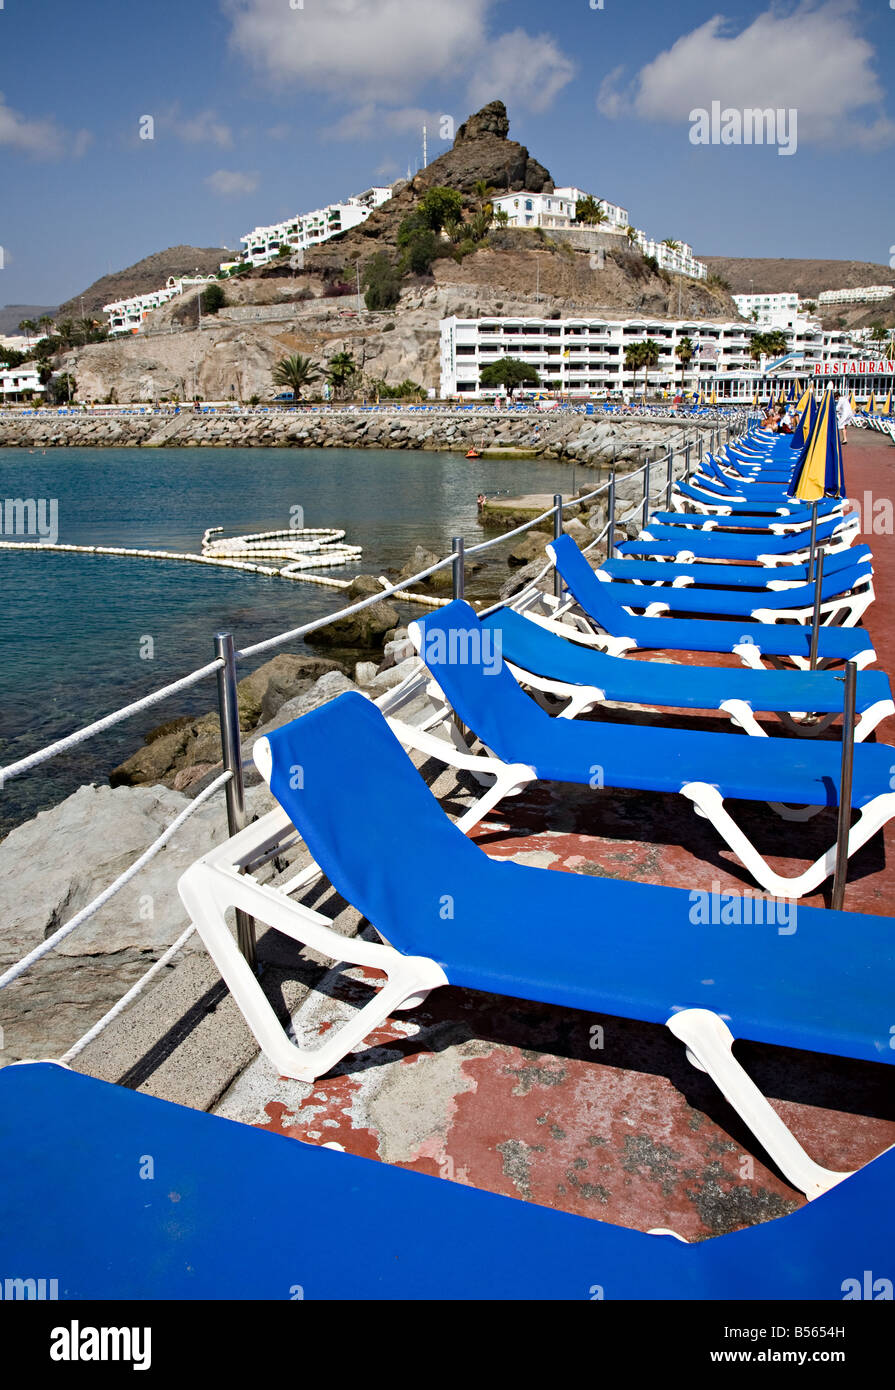 Blue sun loungers Puerto Rico Gran Canaria Spain - Stock Image